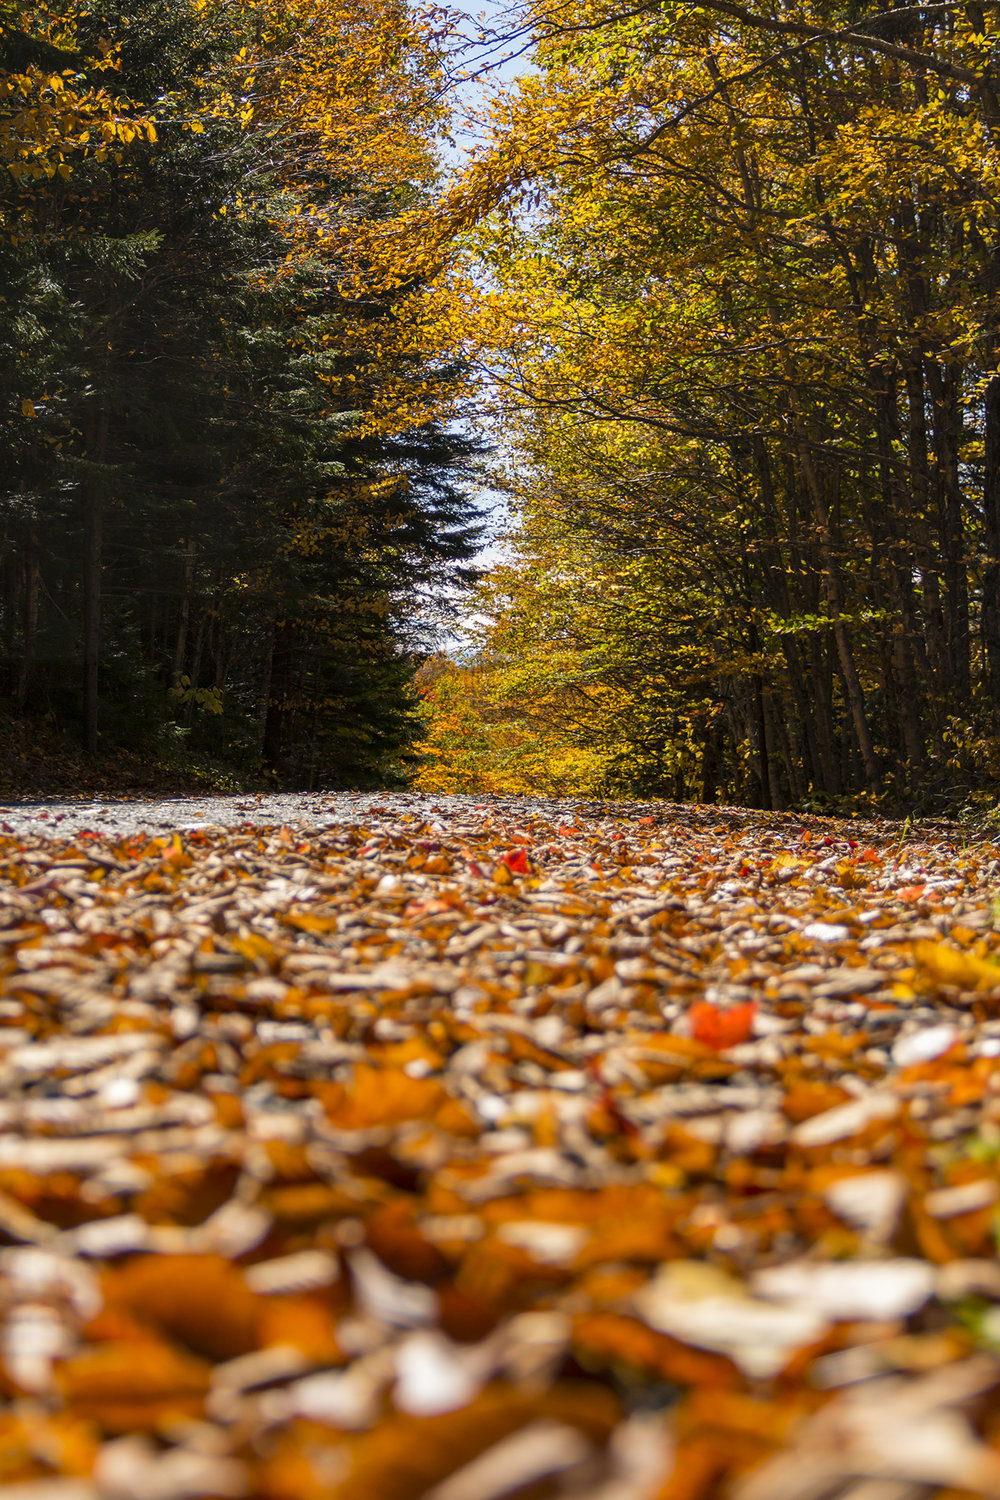 Road-to-Cooler-Weather-BRimages.ca